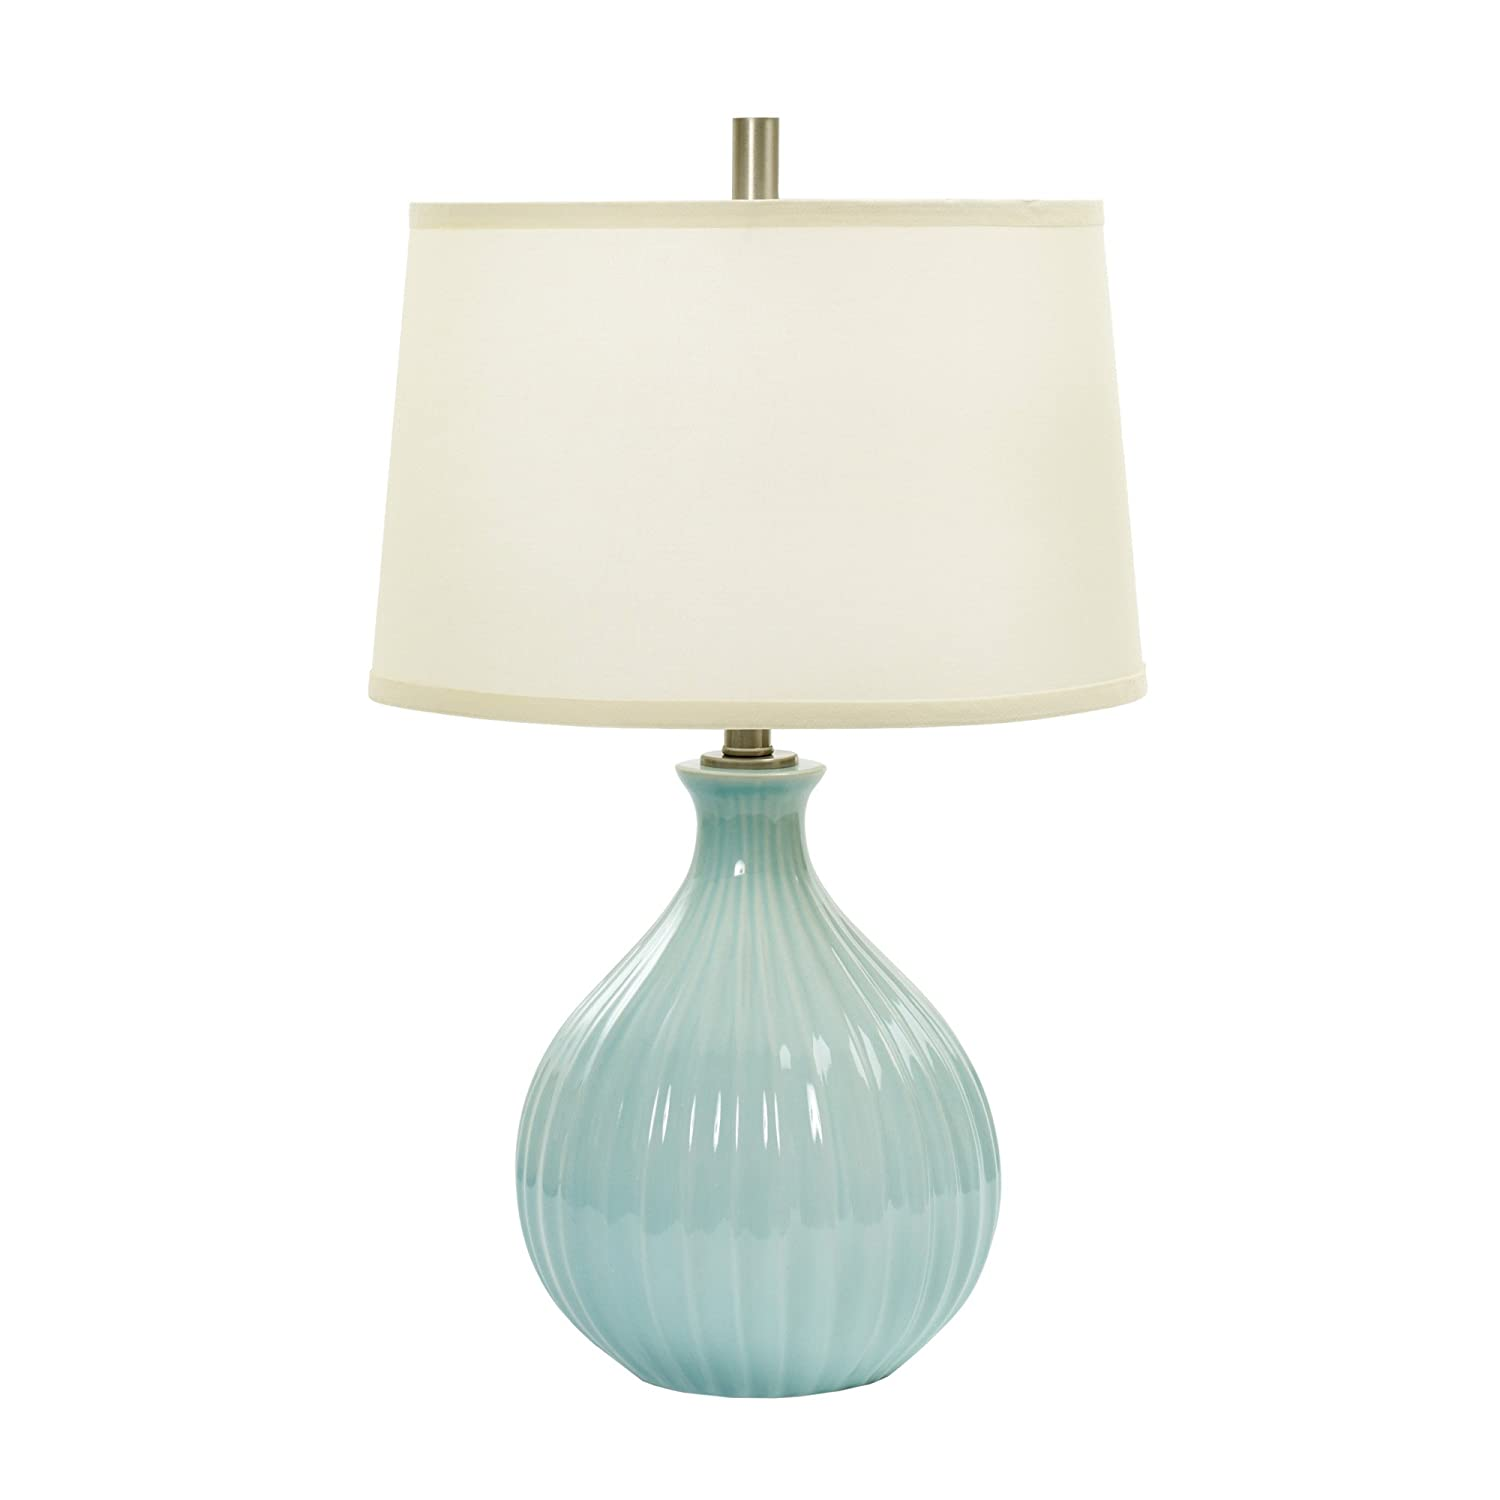 Fangio Lighting W-MR8907SPA BLUE CR 26 Ceramic Table Lamp with Ripple Design Spa Blue Crackle